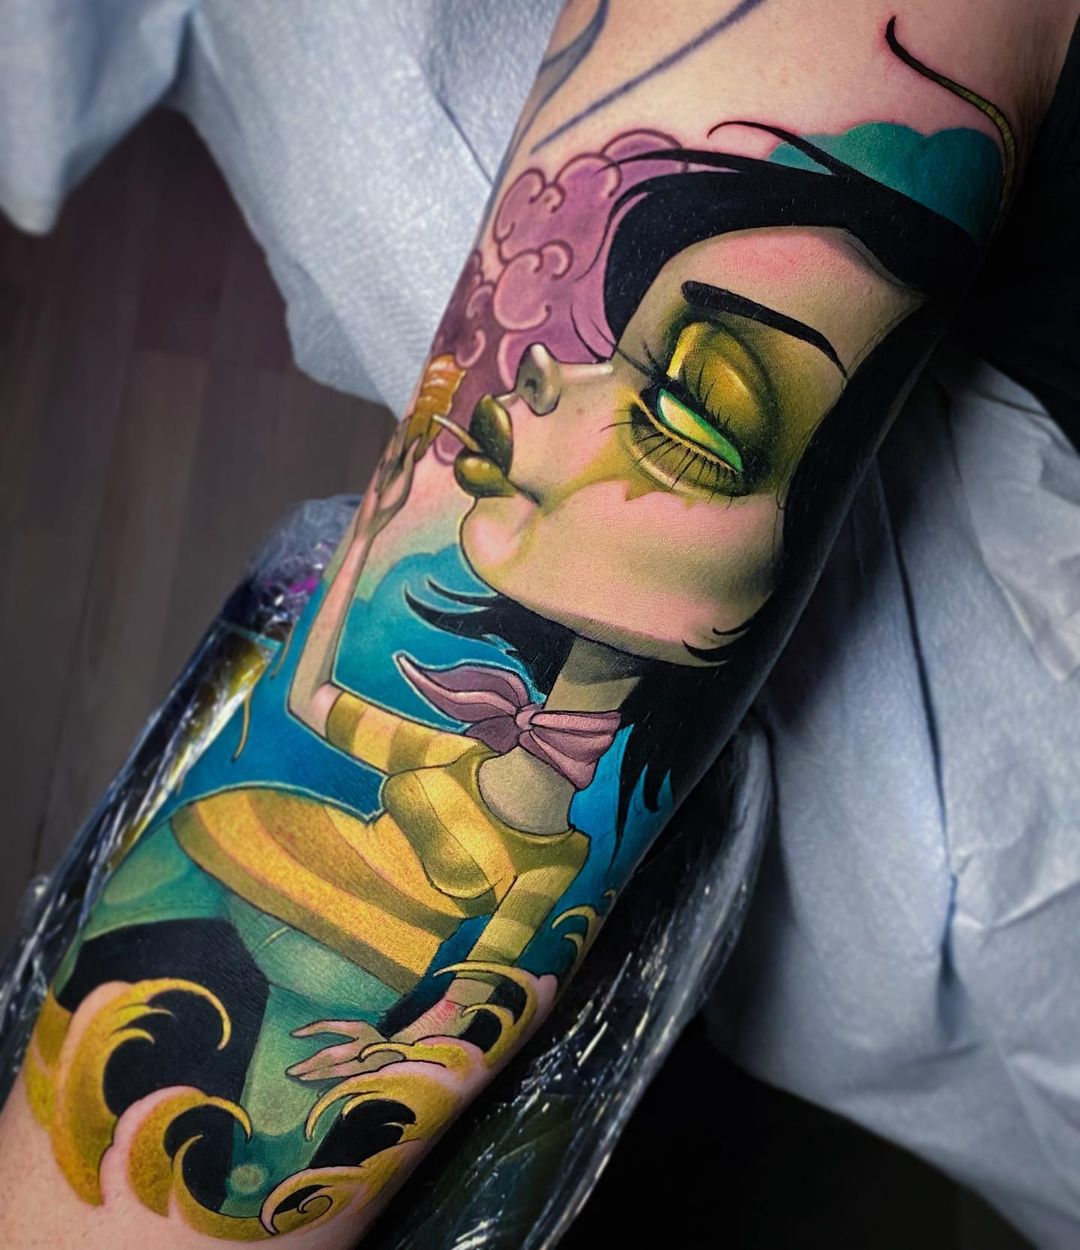 kelly-doty-tattoo-artist-arm-illustration-tattoo